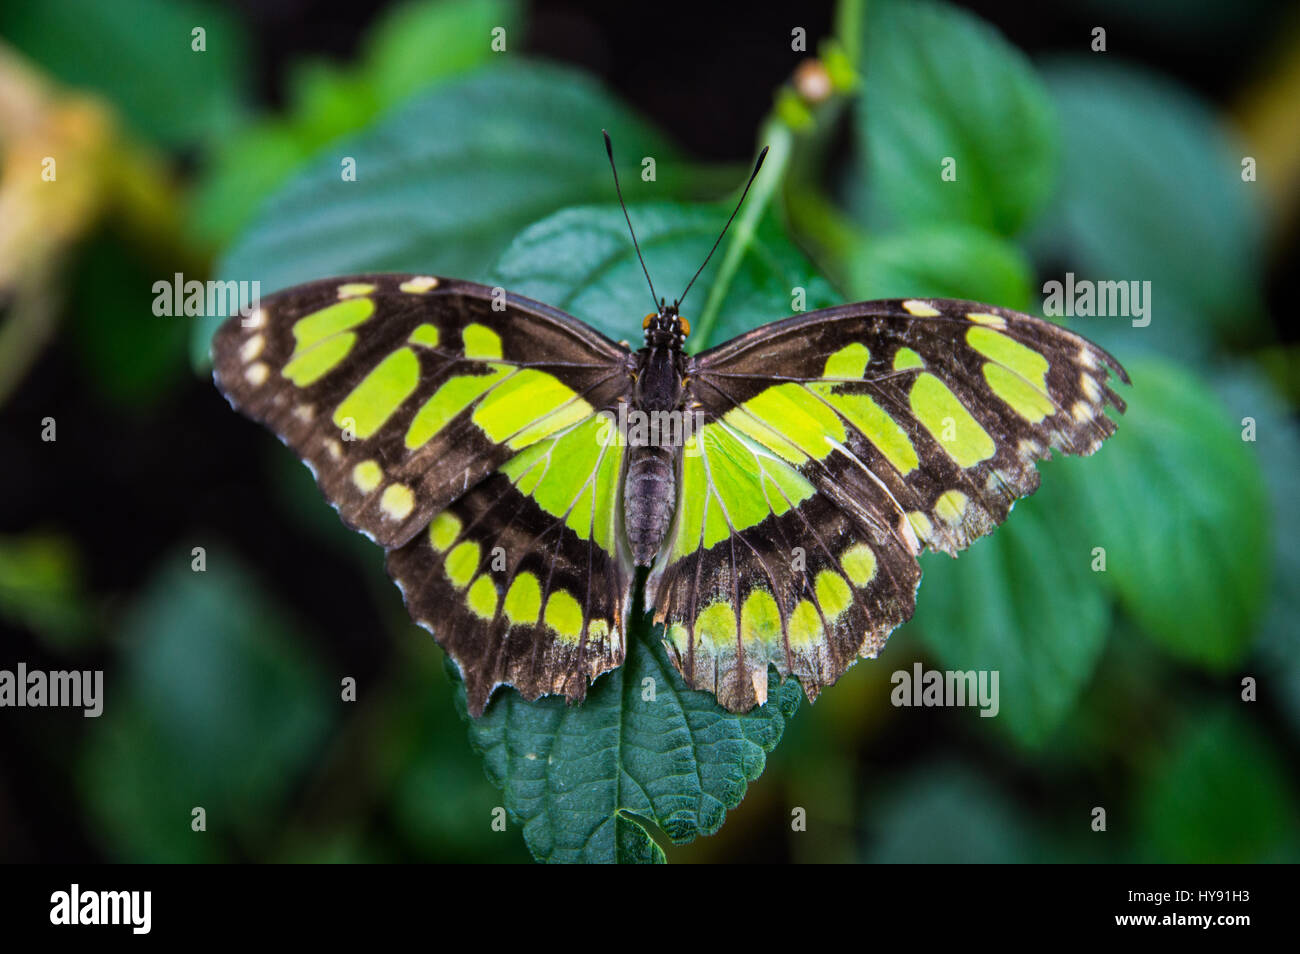 Malachite Butterfly on Leaf - Stock Image